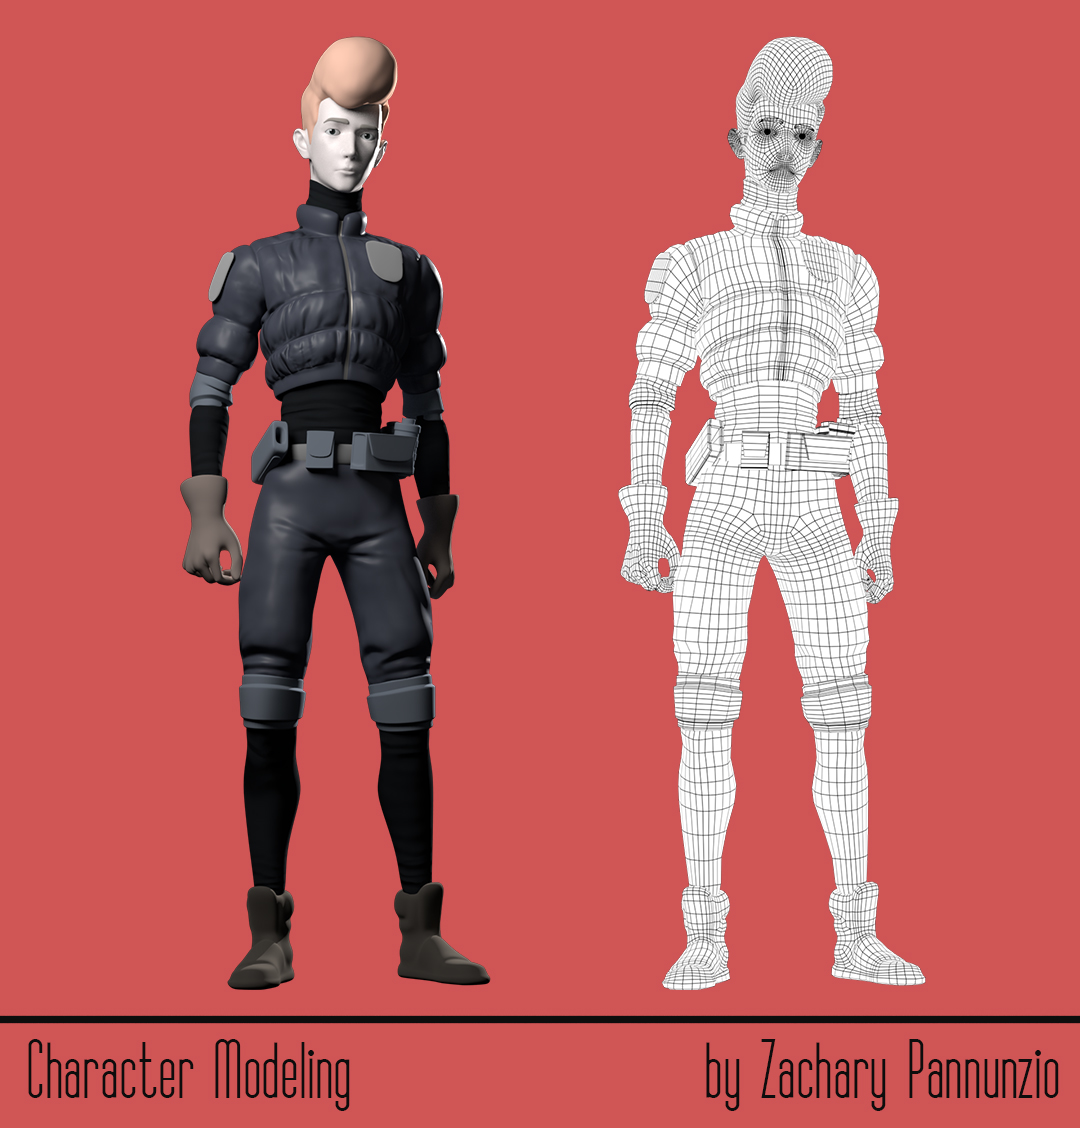 Character Design University Canada : Zachary pannunzio d animation and computer generated